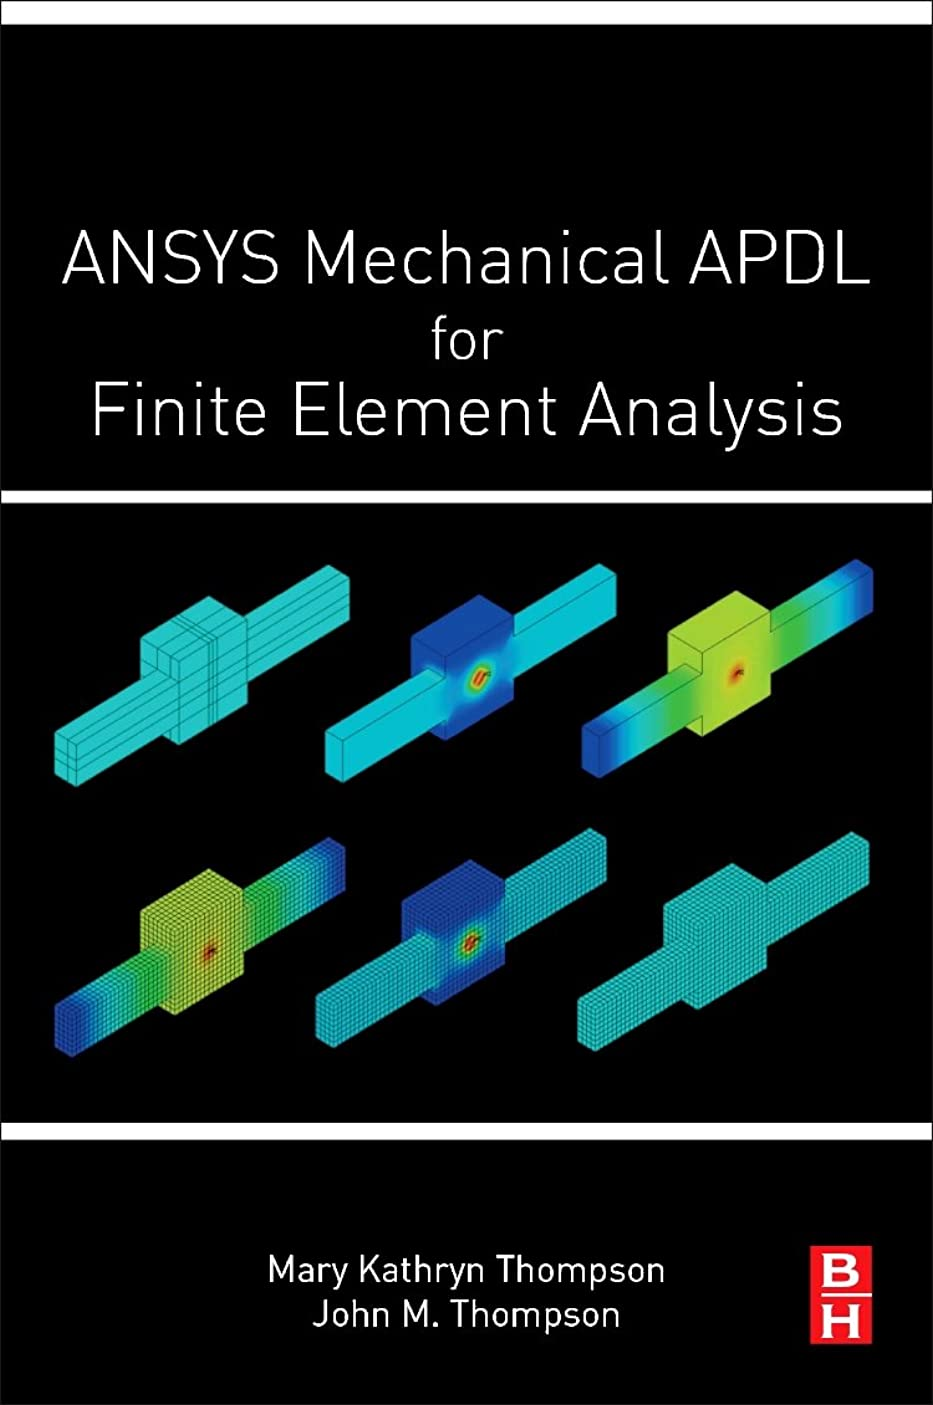 シリアルメイト麻痺ANSYS Mechanical APDL for Finite Element Analysis